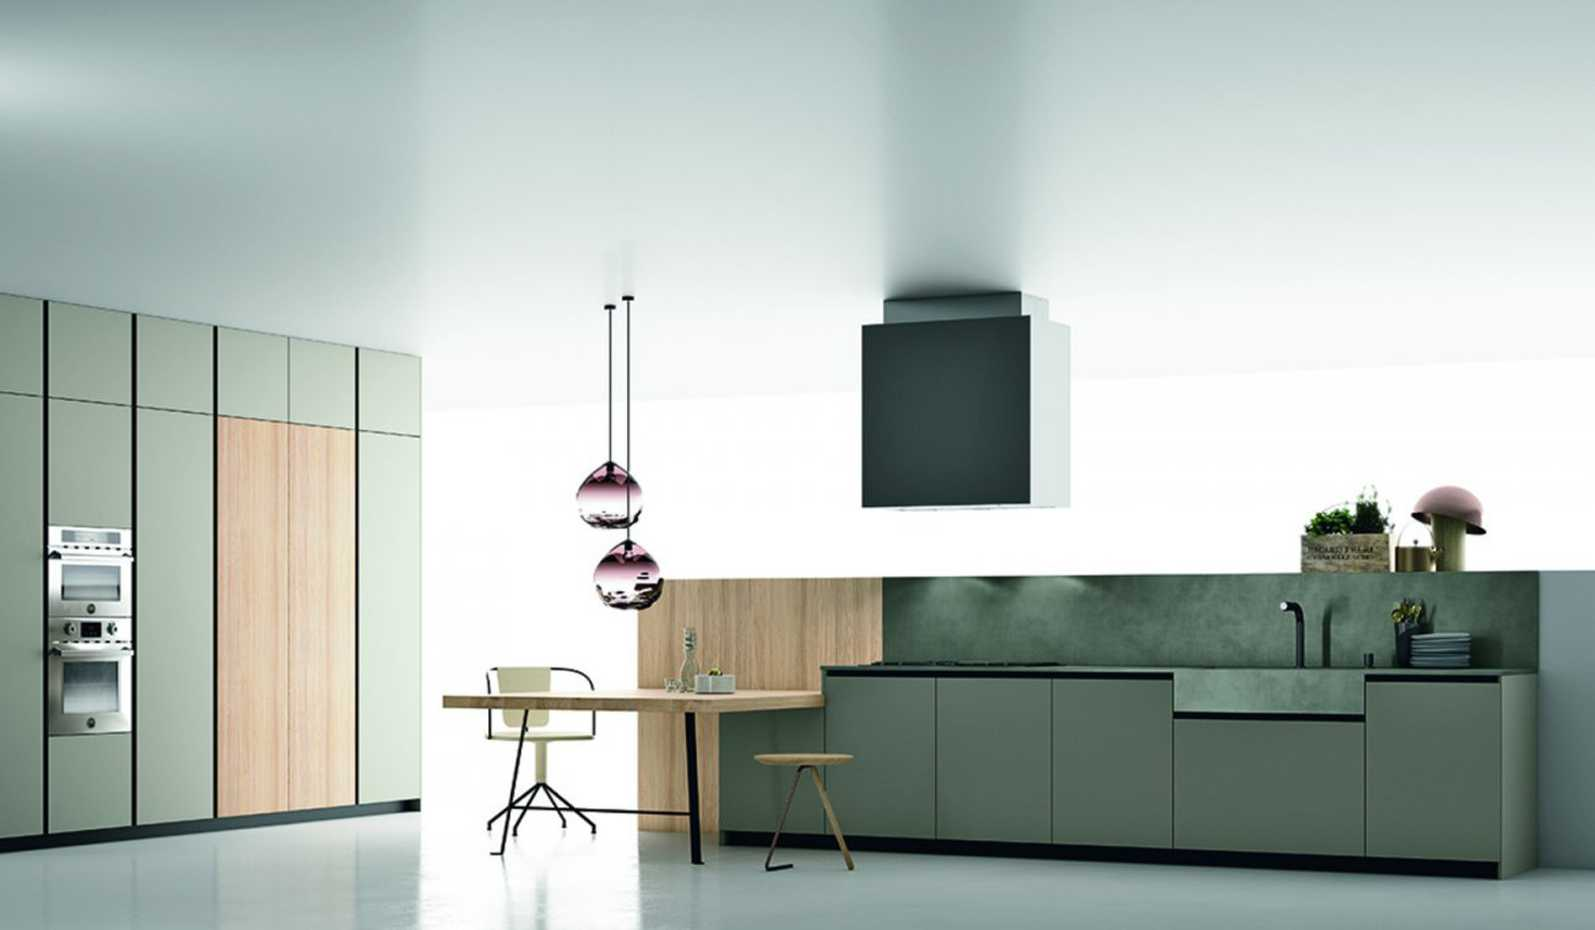 Materia by Doimo Cucine product image 4